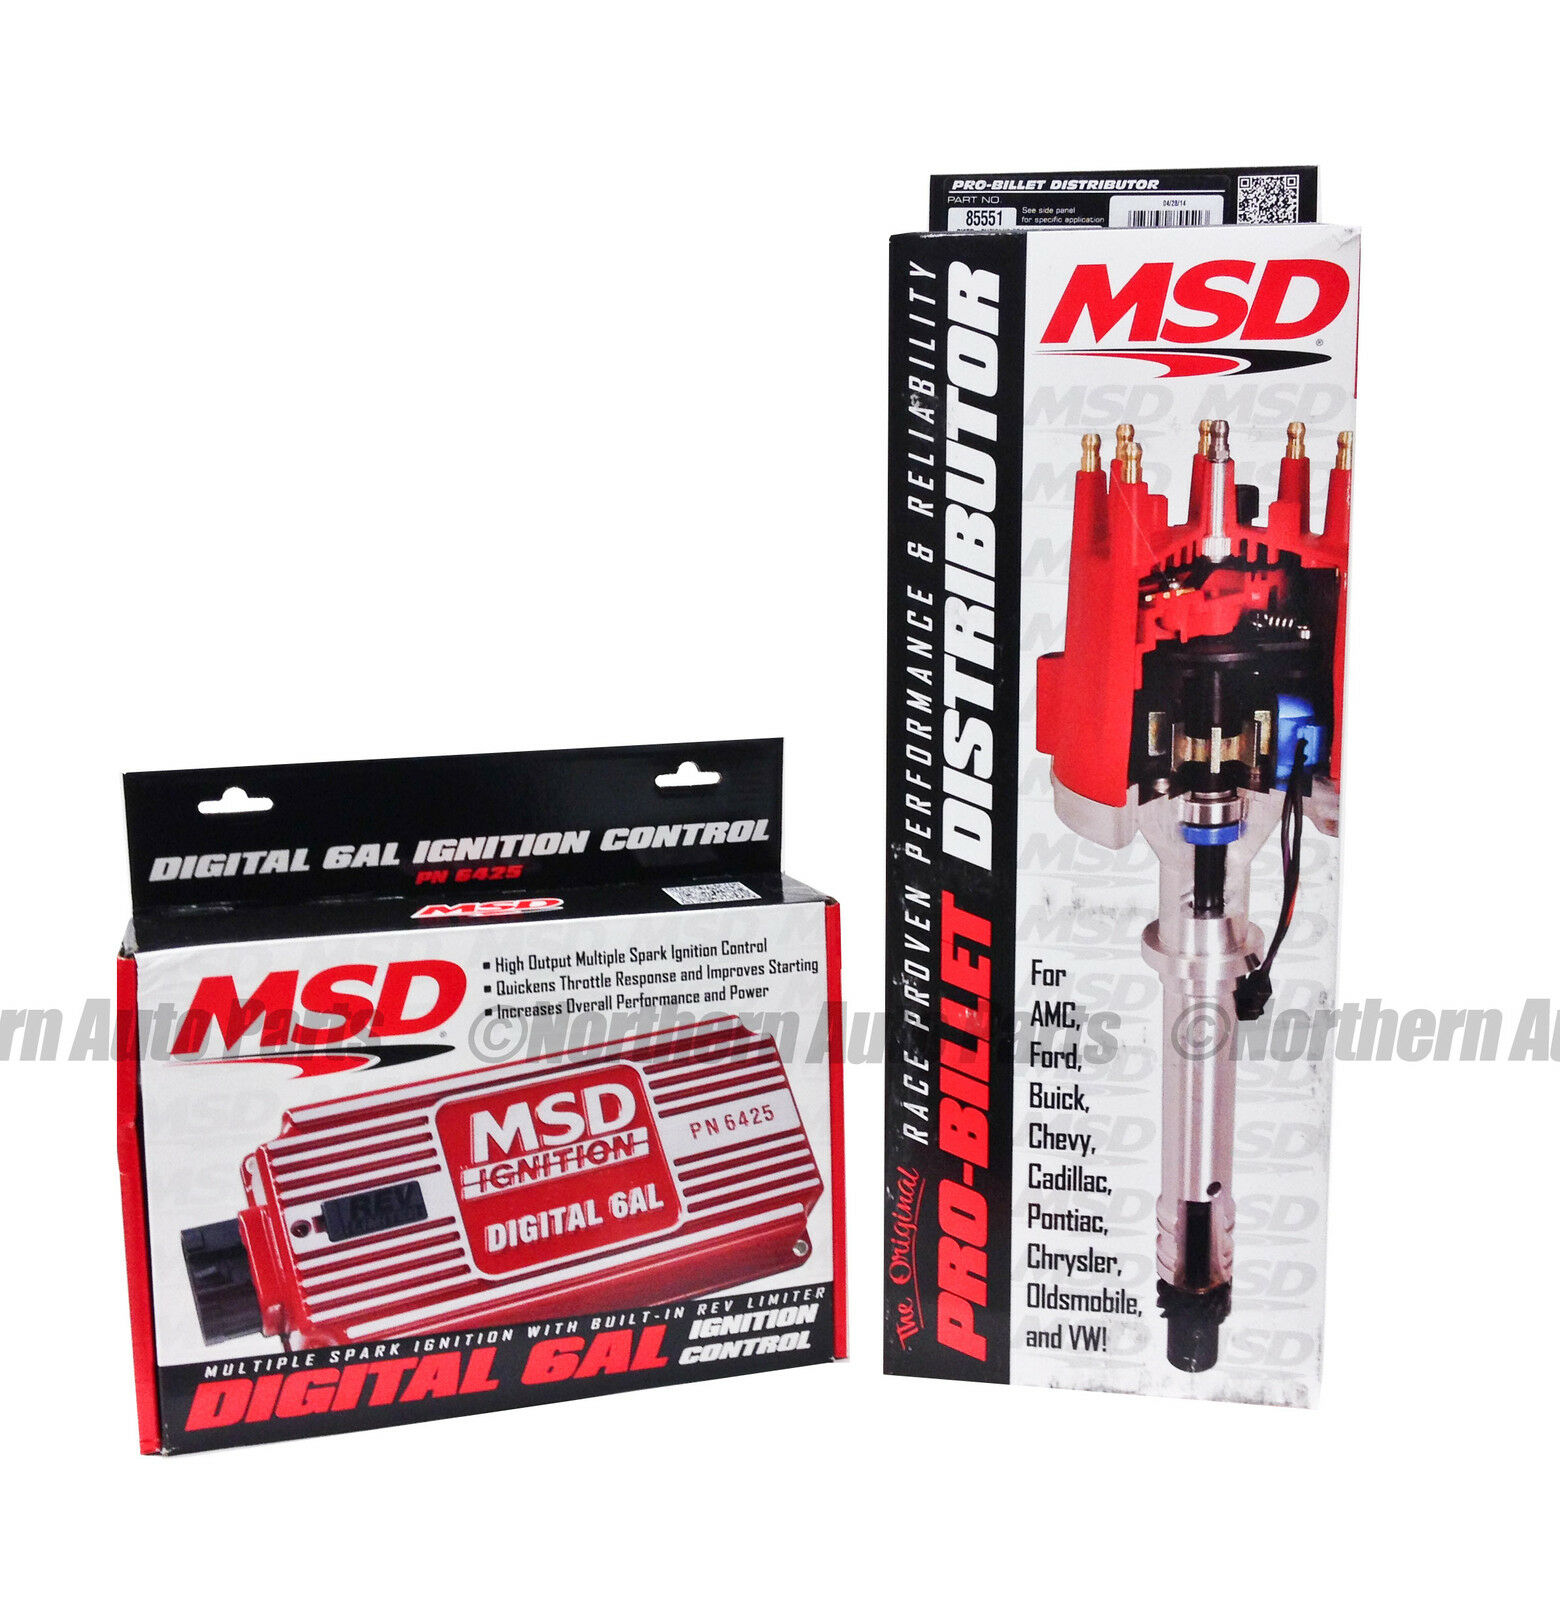 Msd 6425 85551 Combo Kit Inc 6al Box With Pro Billet Distributor Chevy Digital Wiring 1 Of See More